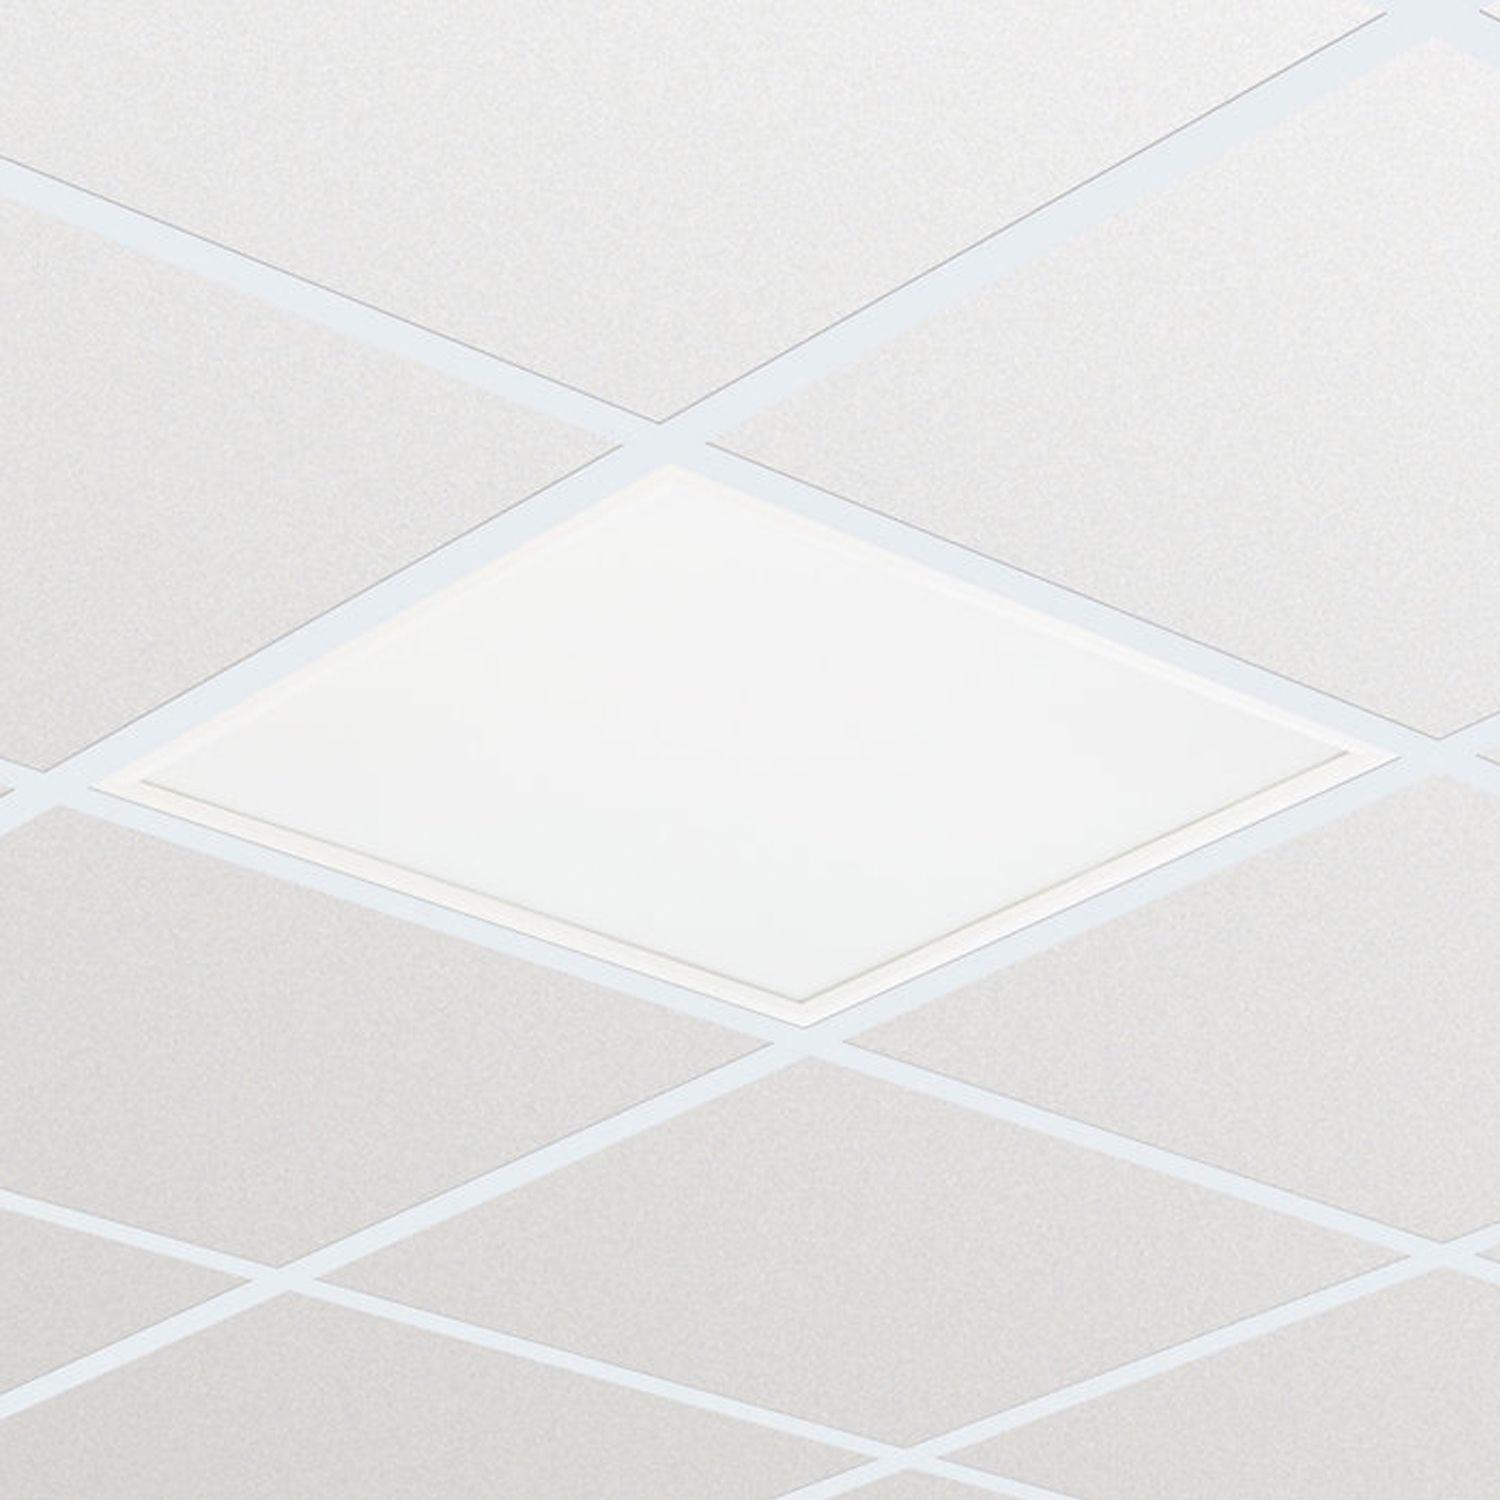 Philips LED Panel CoreLine RC132V G4 60x60cm 4000K 4300lm UGR <19 | Cool White - Replaces 4x18W